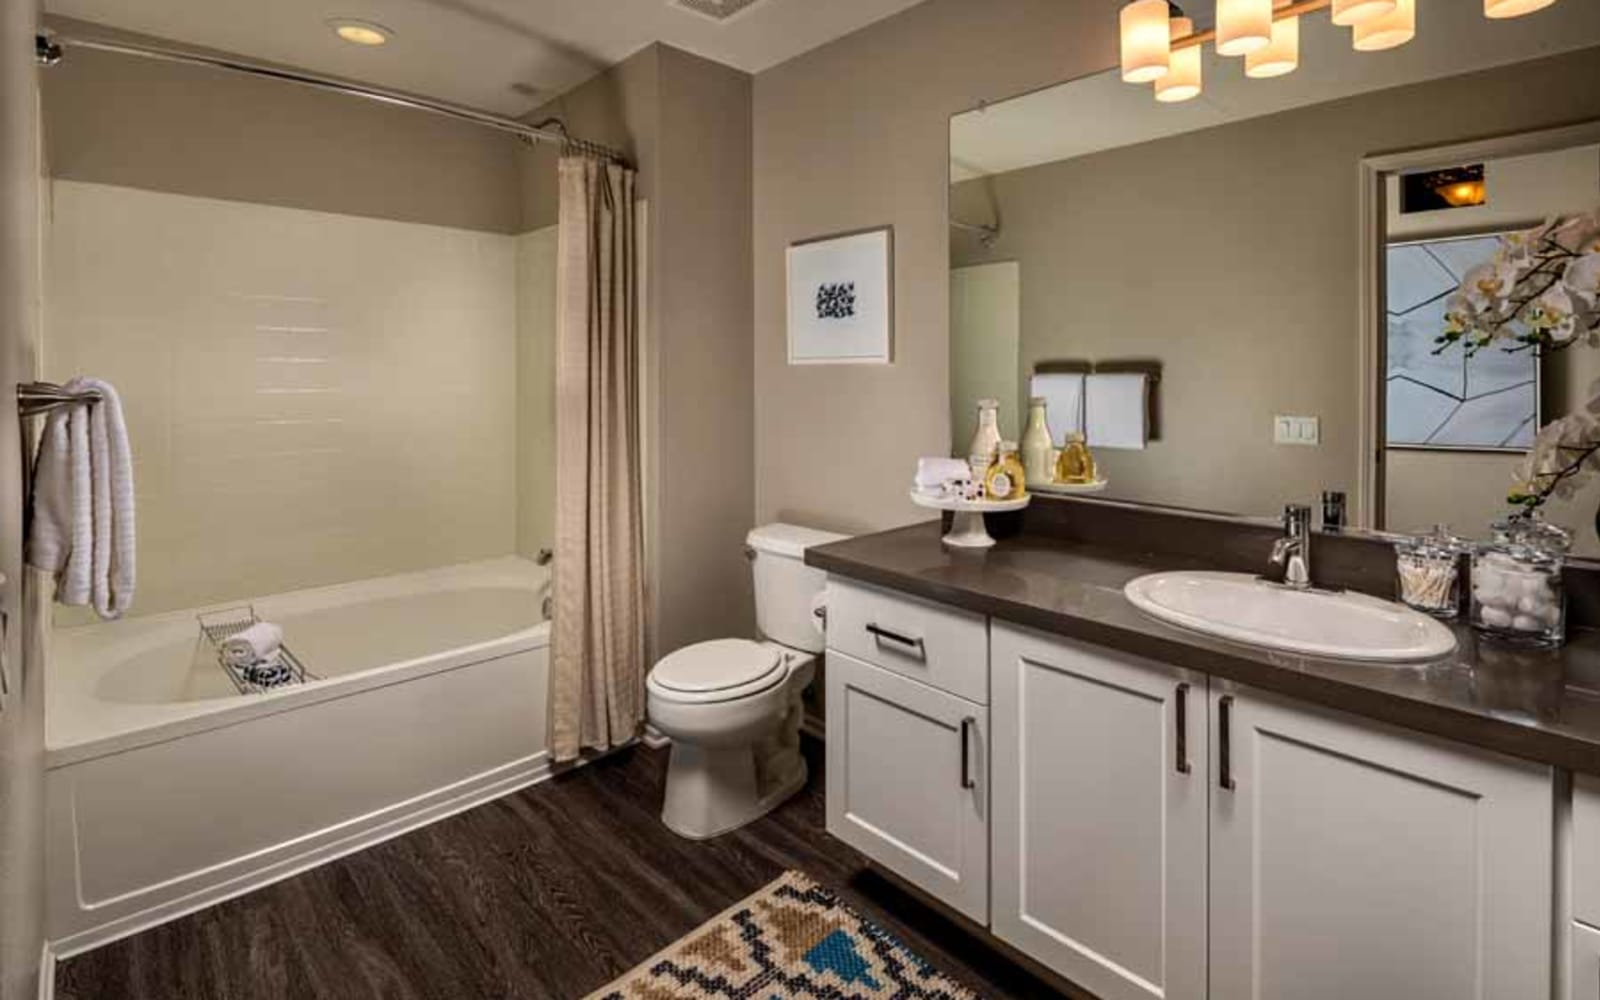 Wood flooring in an apartment bathroom at Castlerock at Sycamore Highlands in Riverside, California